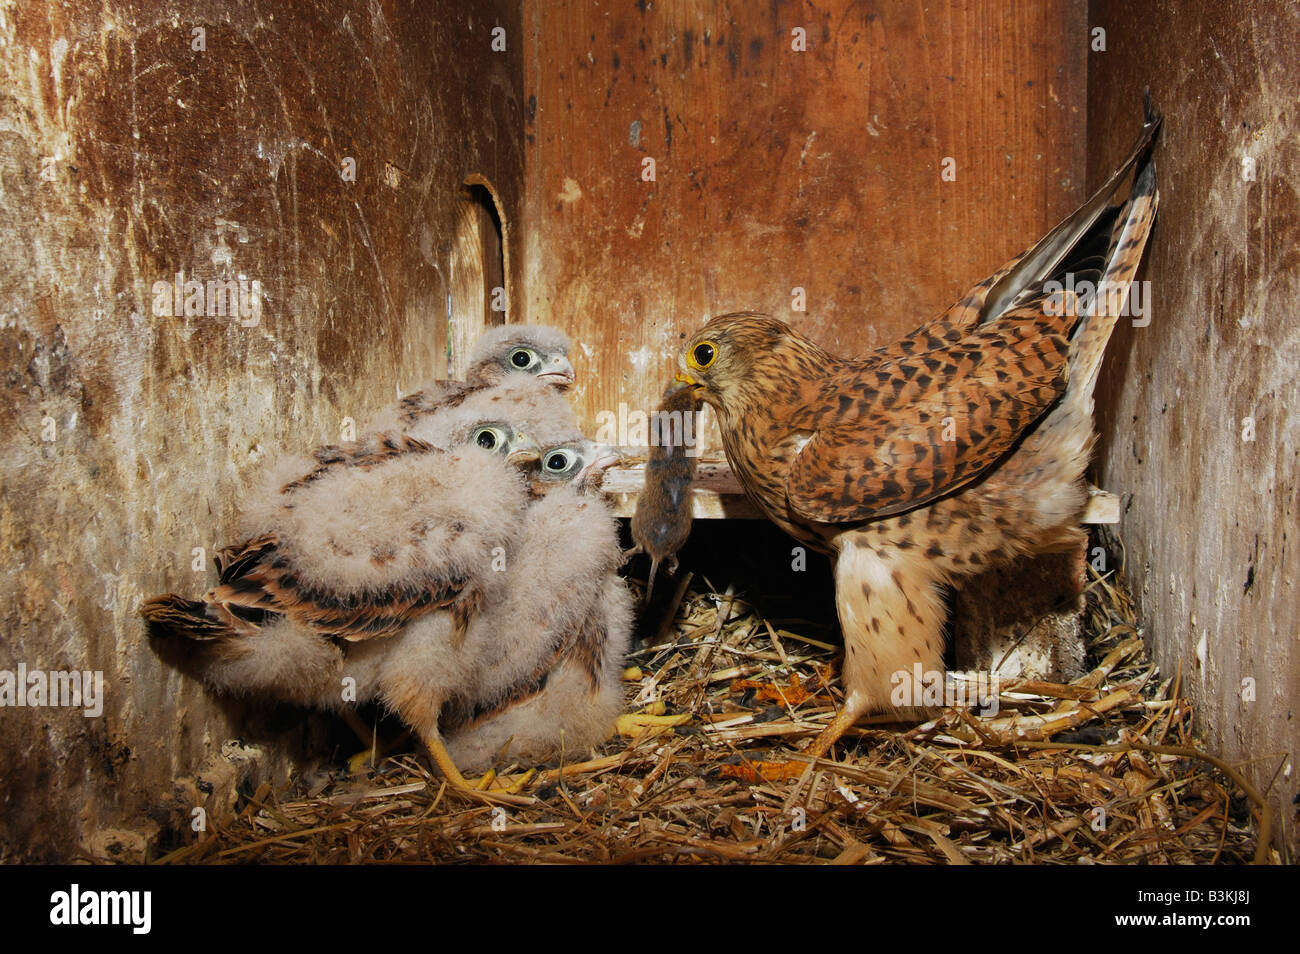 Common Kestrel Falco tinnunculus adult feeding young with mouse prey Switzerland - Stock Image